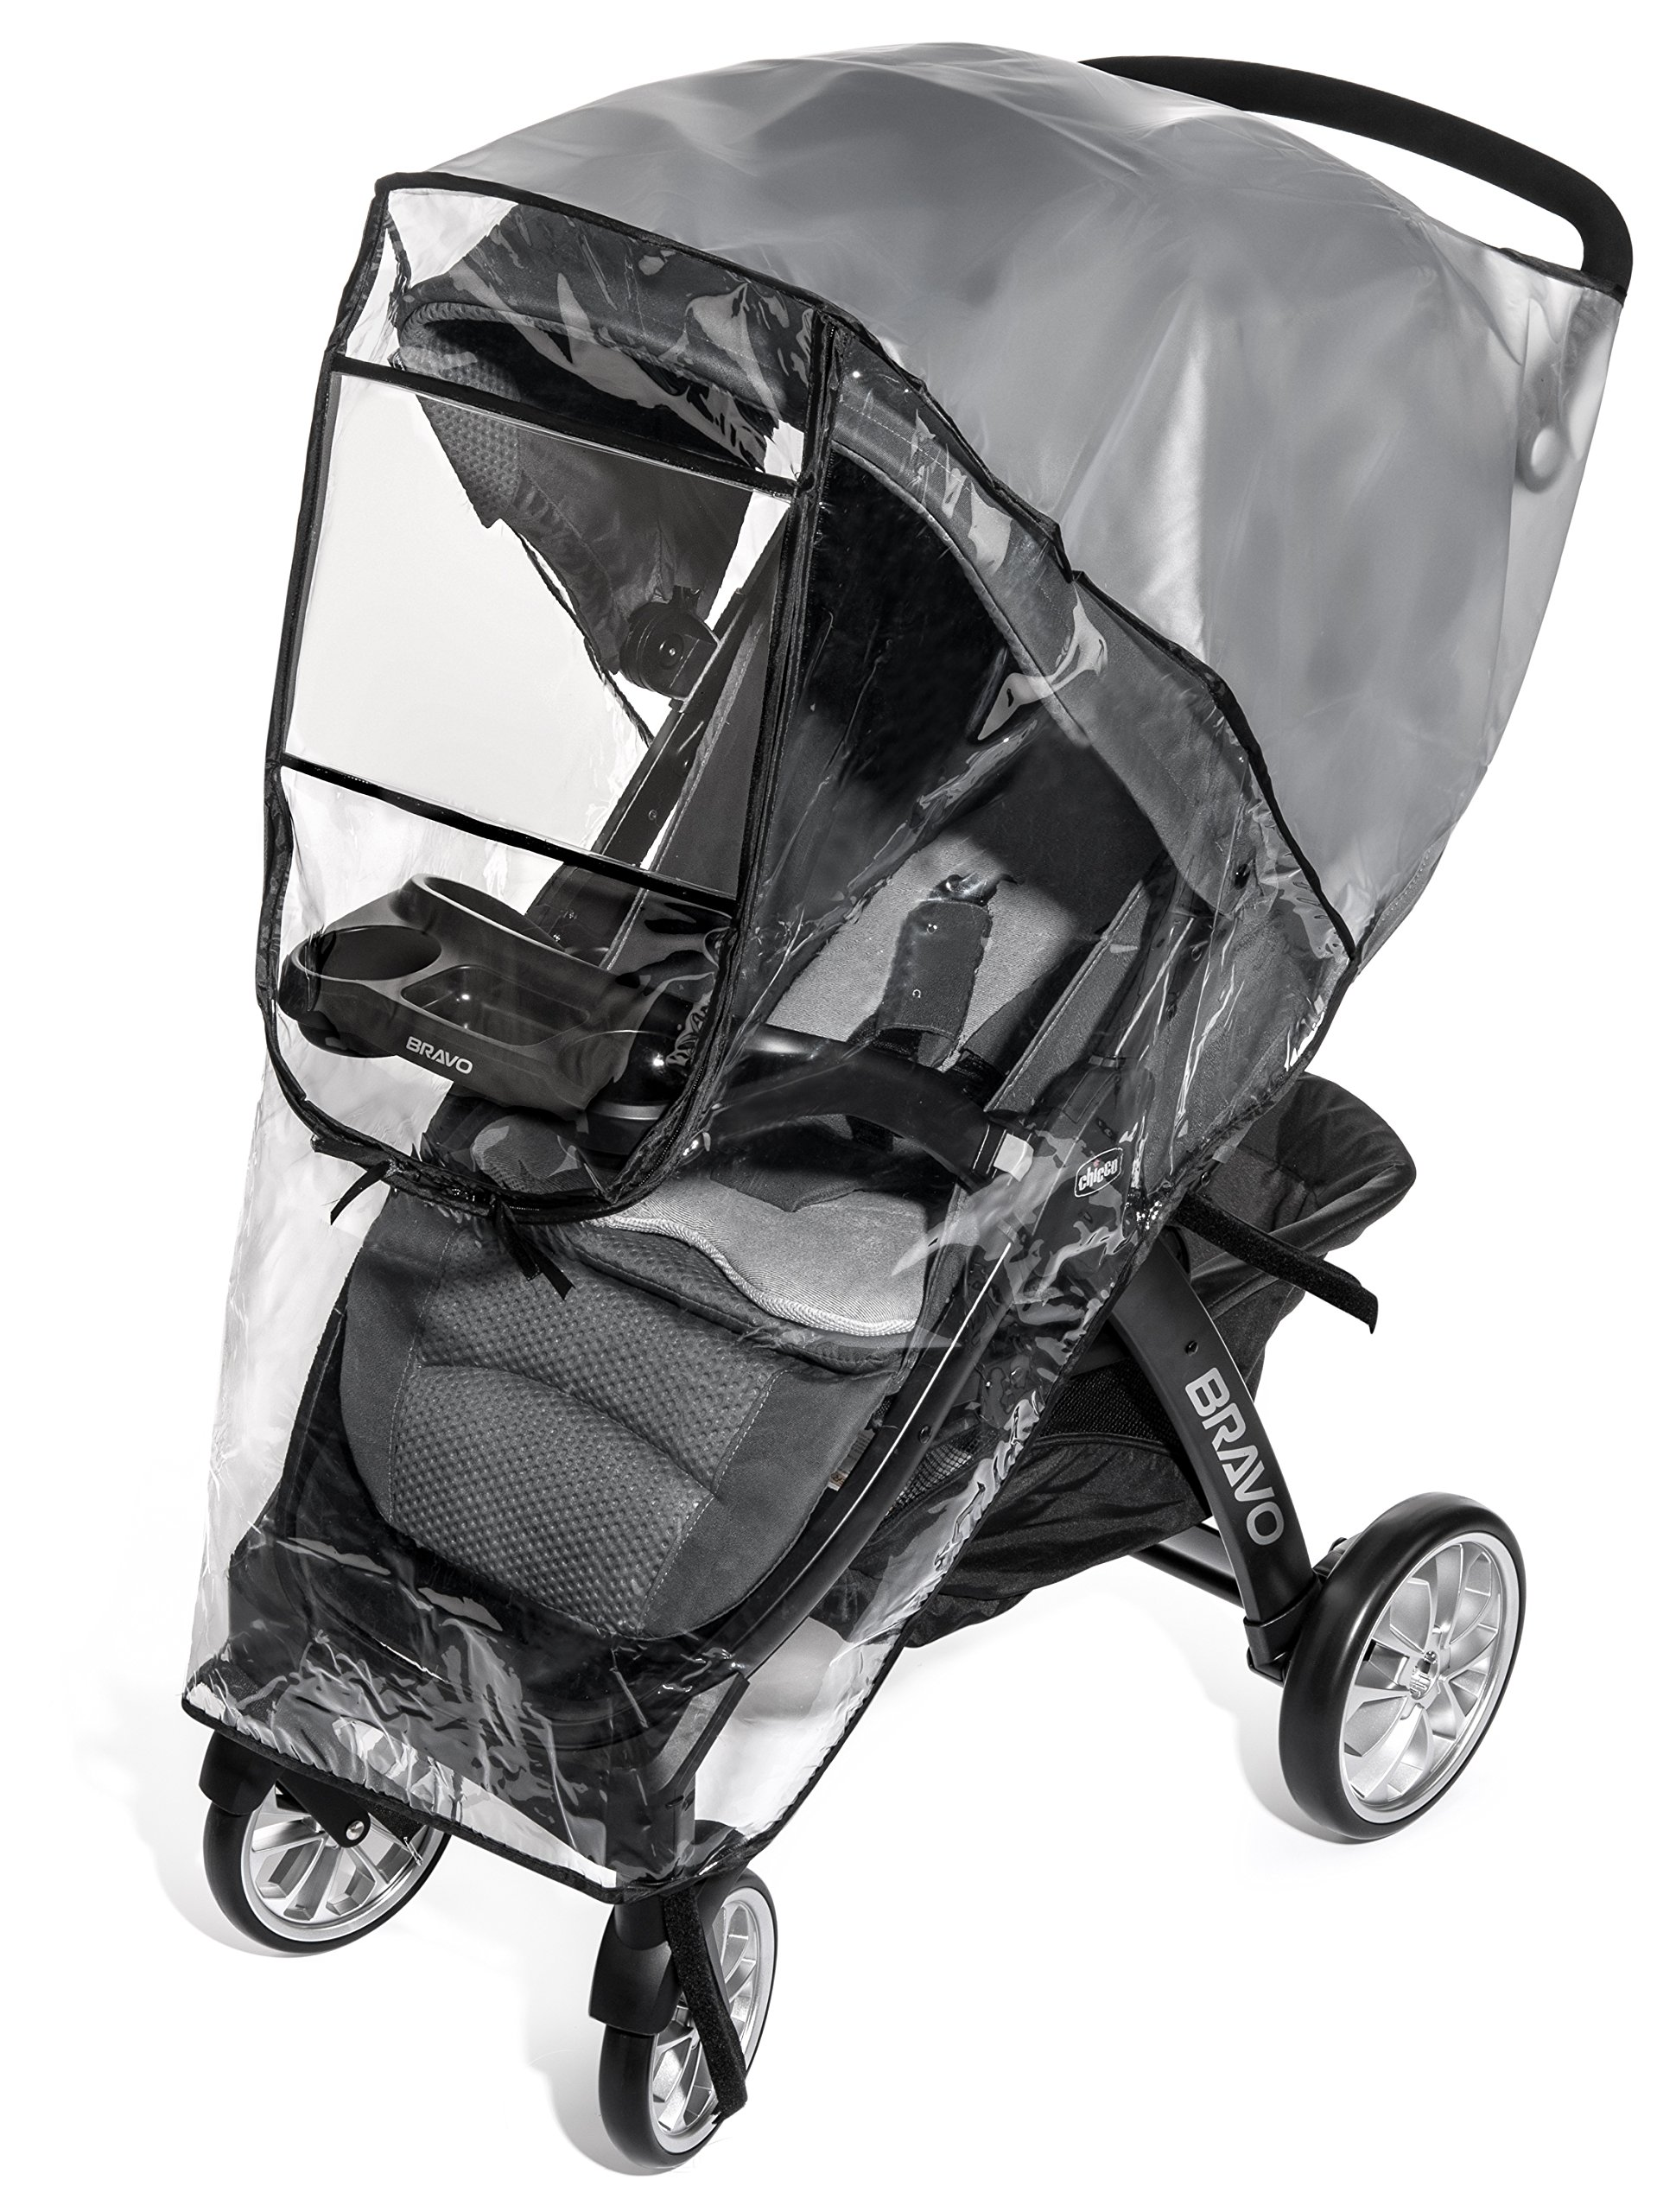 Weltru Premium Stroller Rain Cover Weather Shield, Easy in/Out Zipper, Universal Size, Waterproof, Protects Against Wind, Rain, Snow, Insects by Weltru